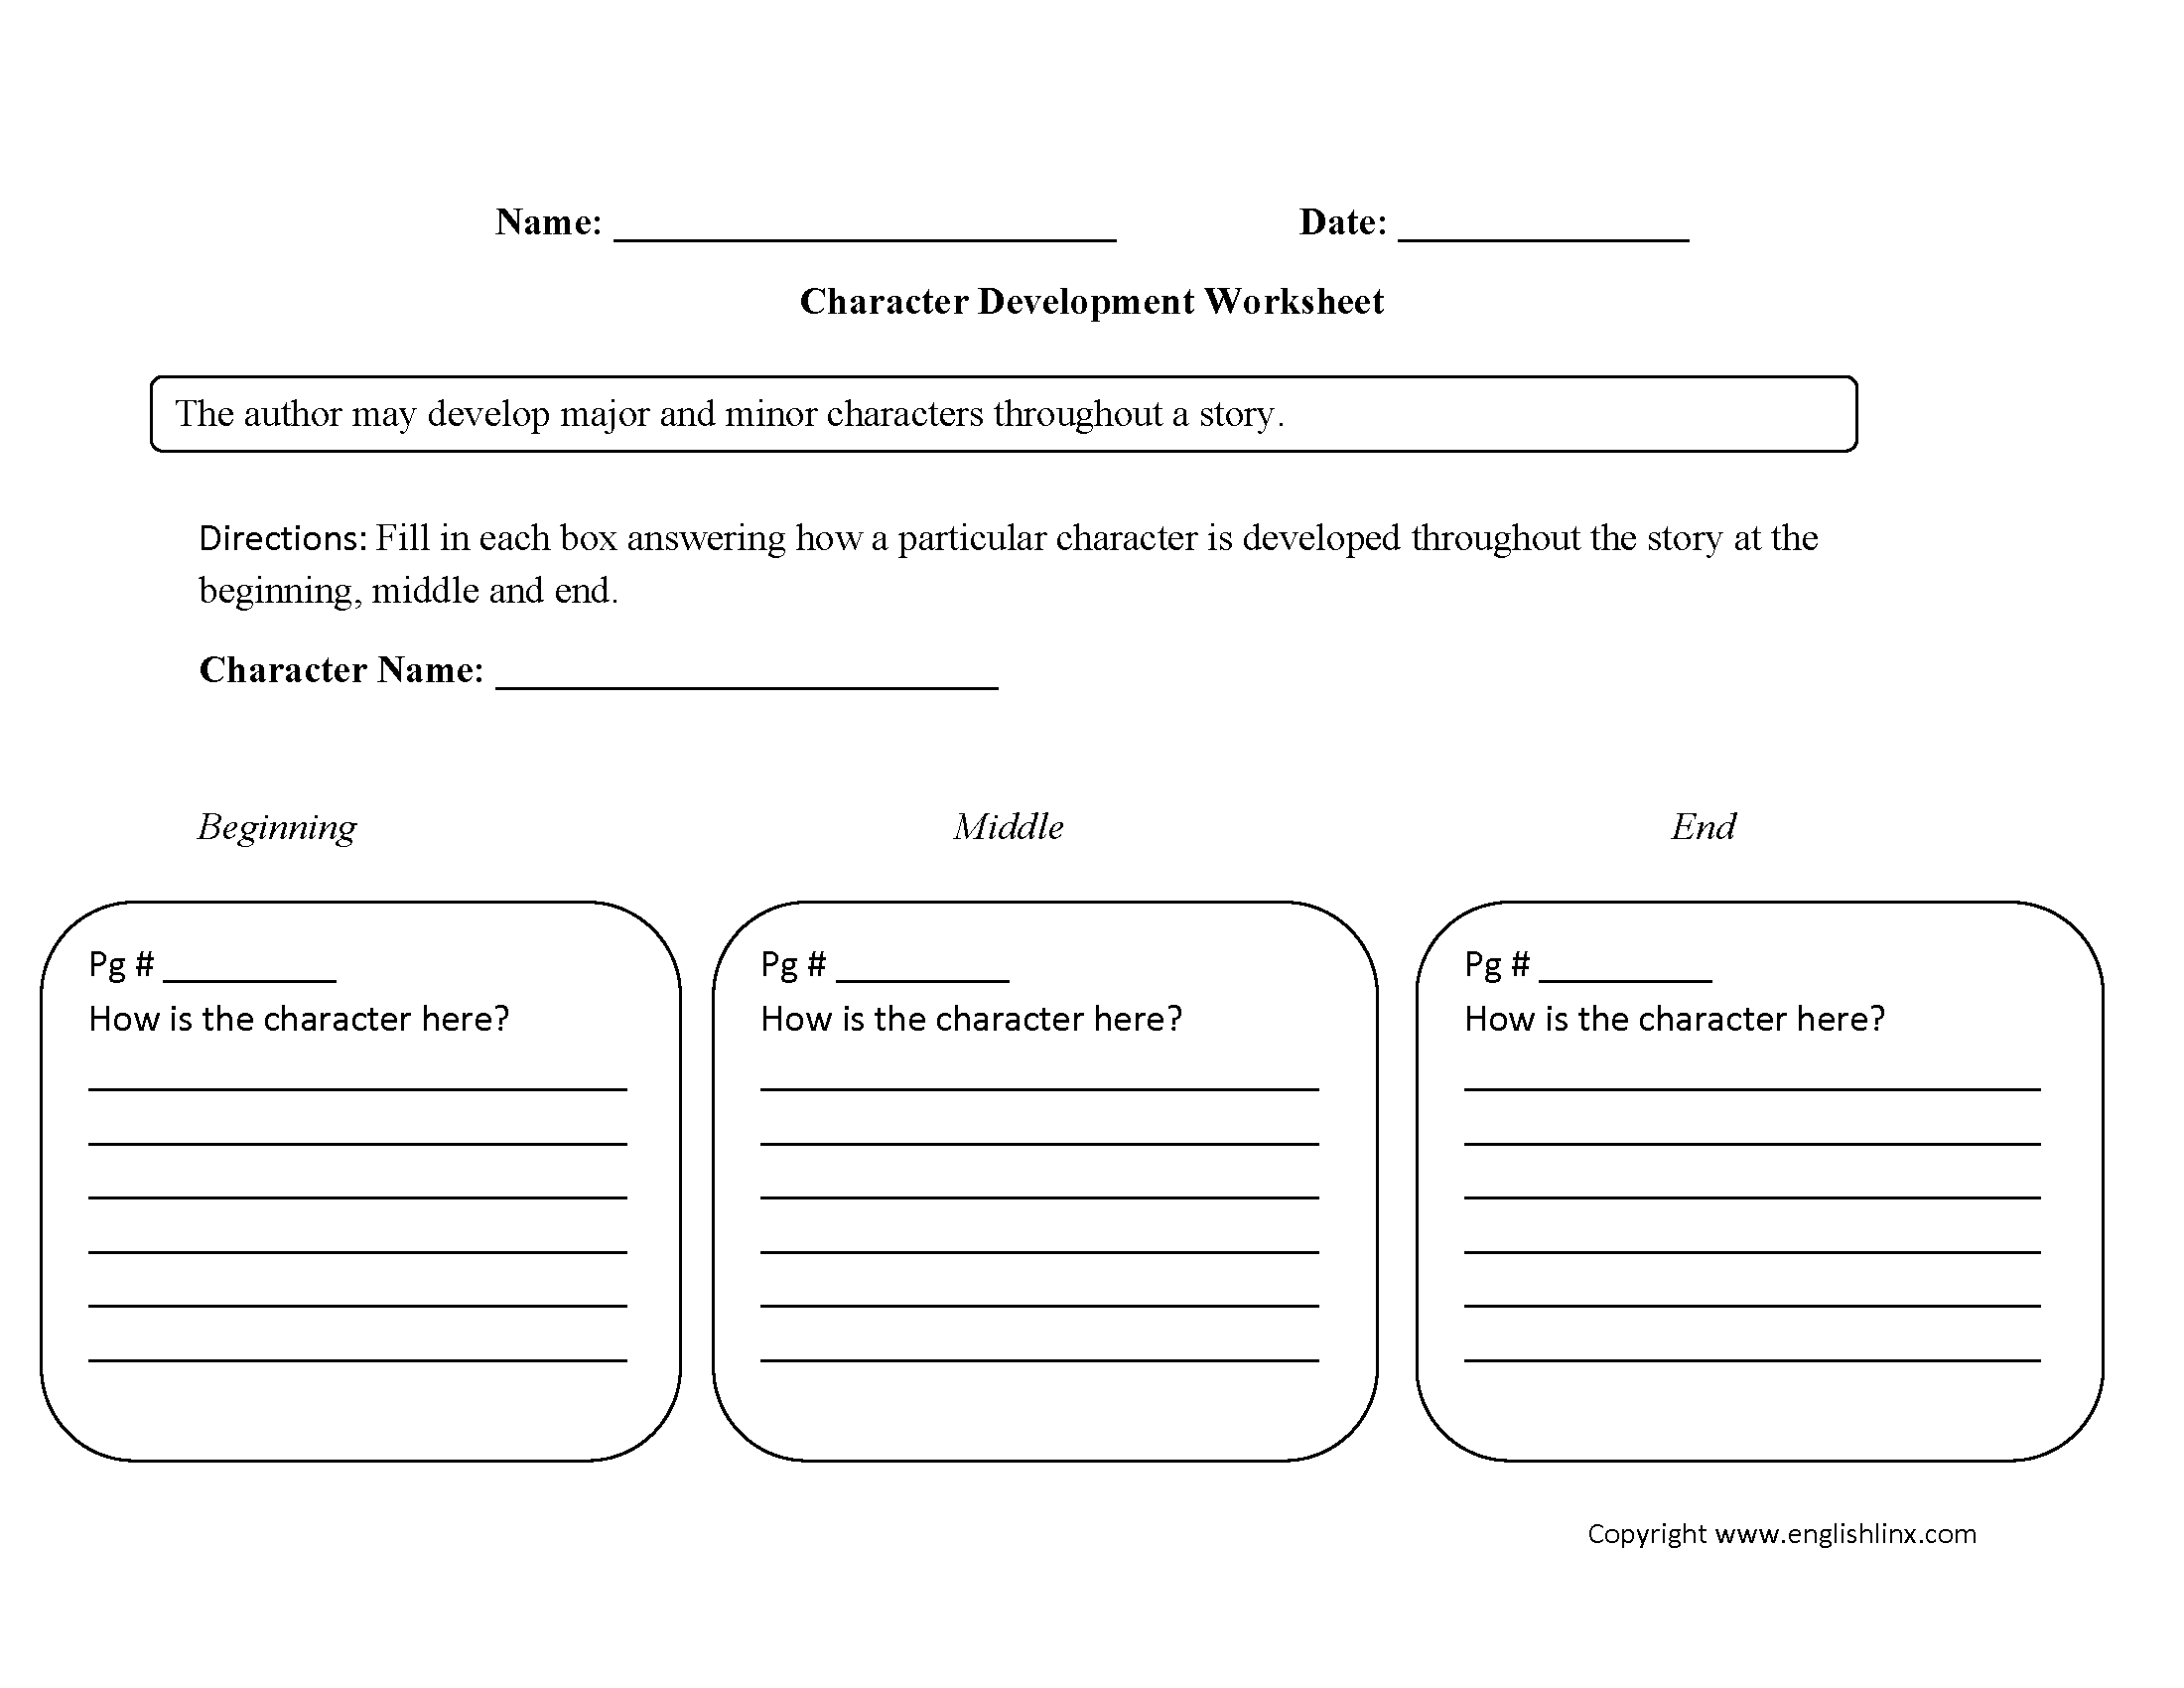 Character Development Worksheet Printable